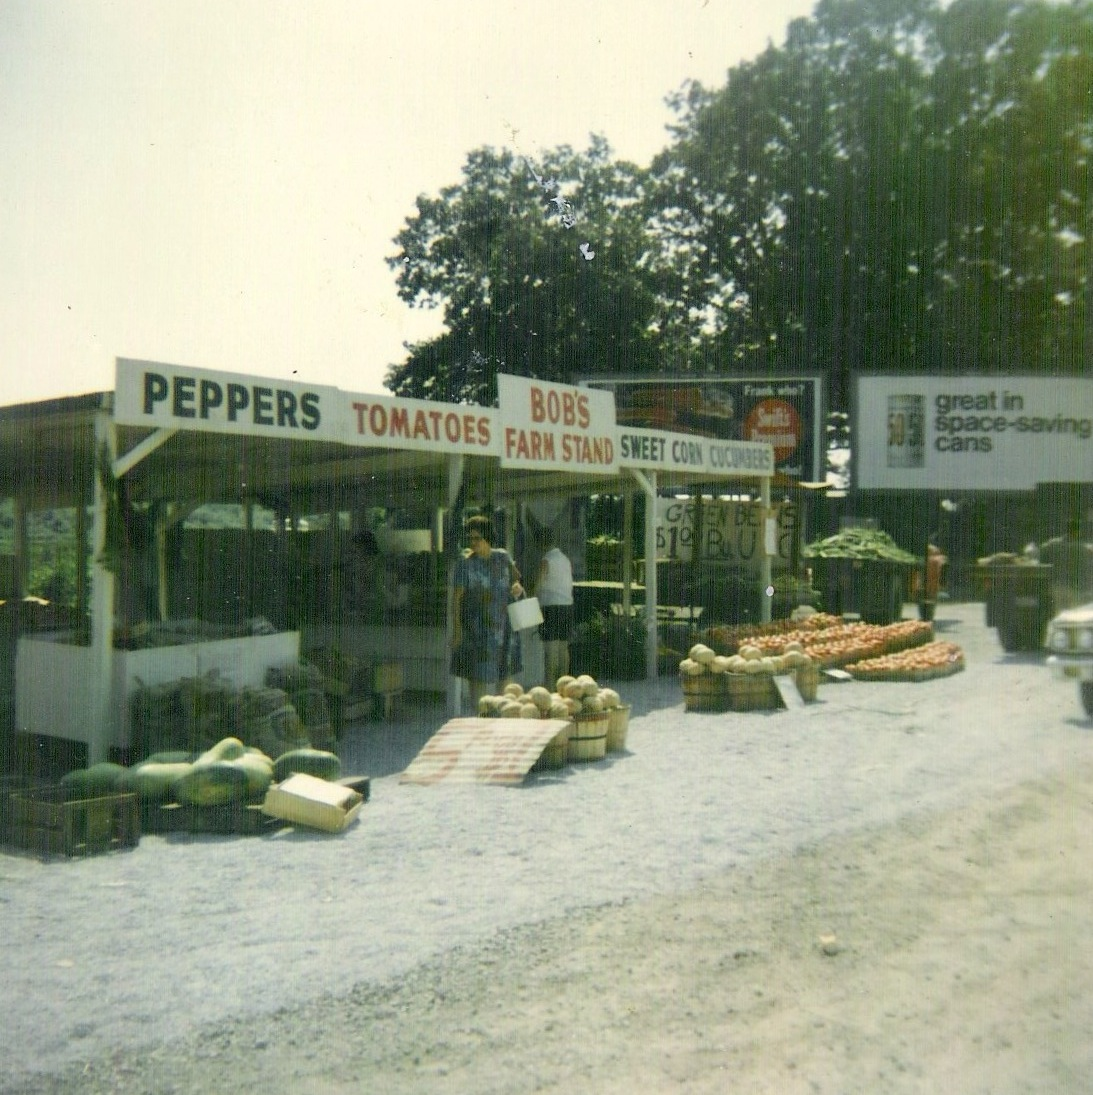 Bob's Farm Stand on Route 6, late 1960s